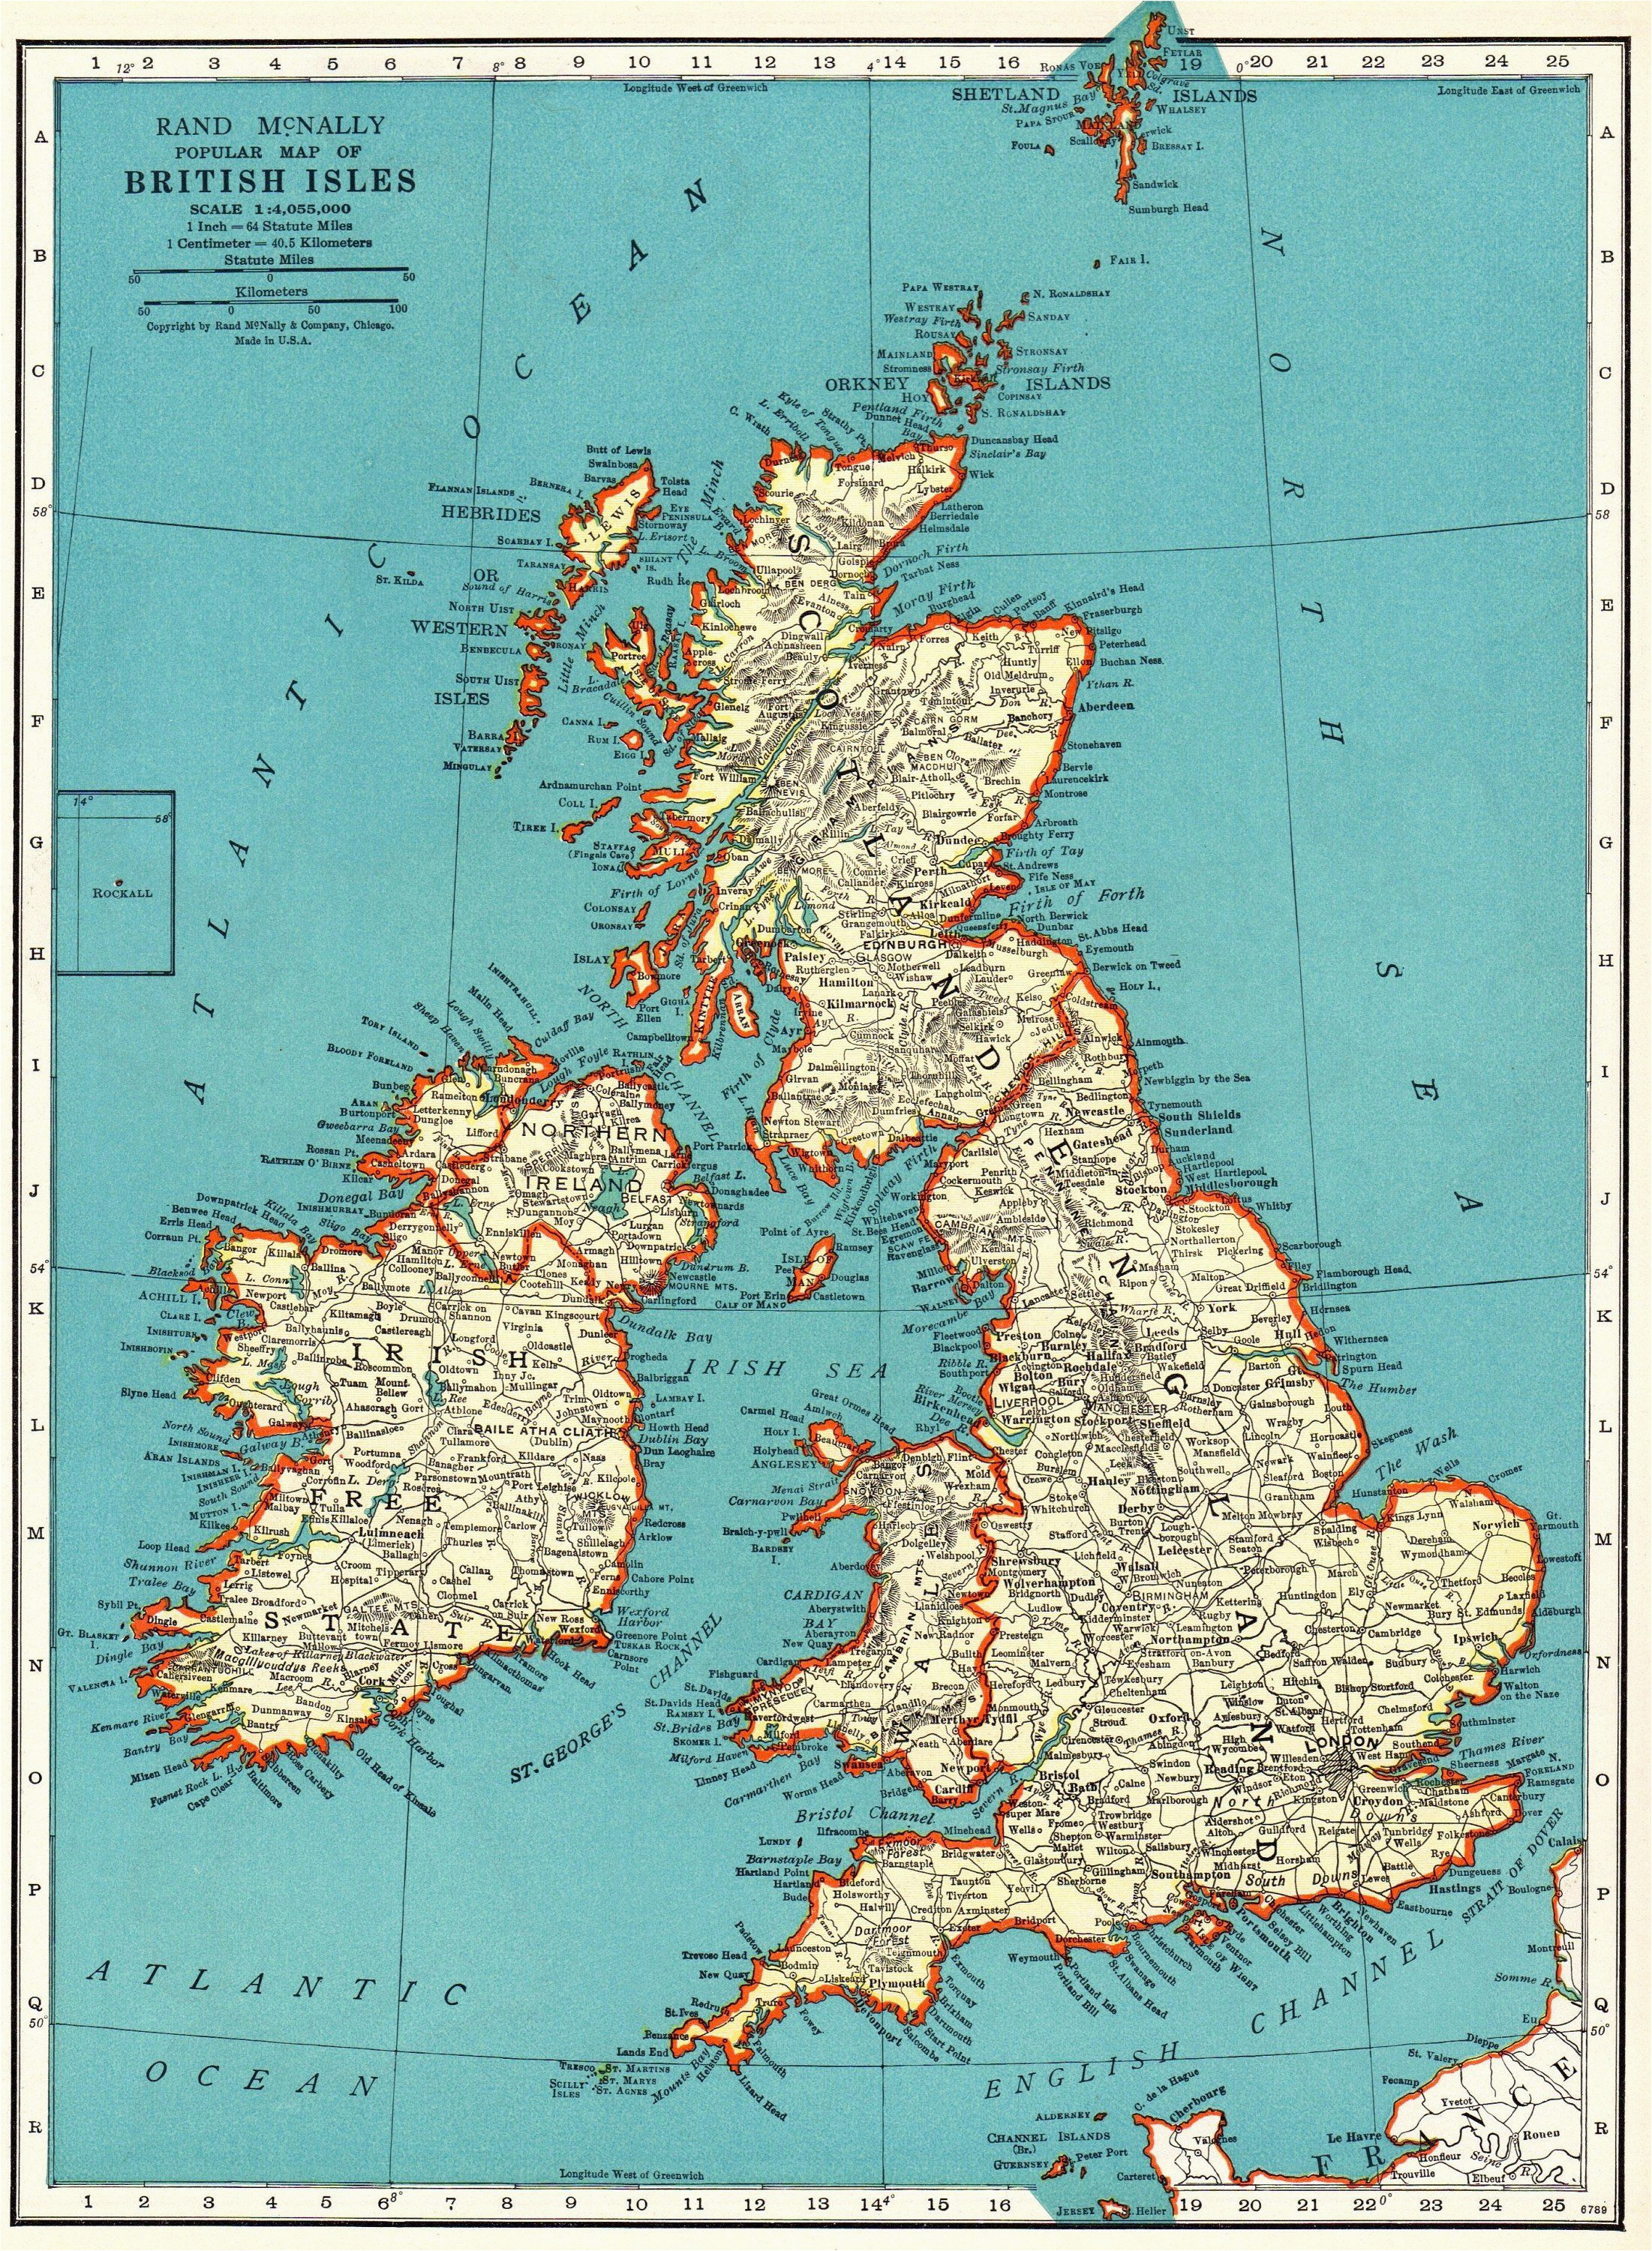 A4 Map Of England 1939 Antique British isles Map Vintage United Kingdom Map